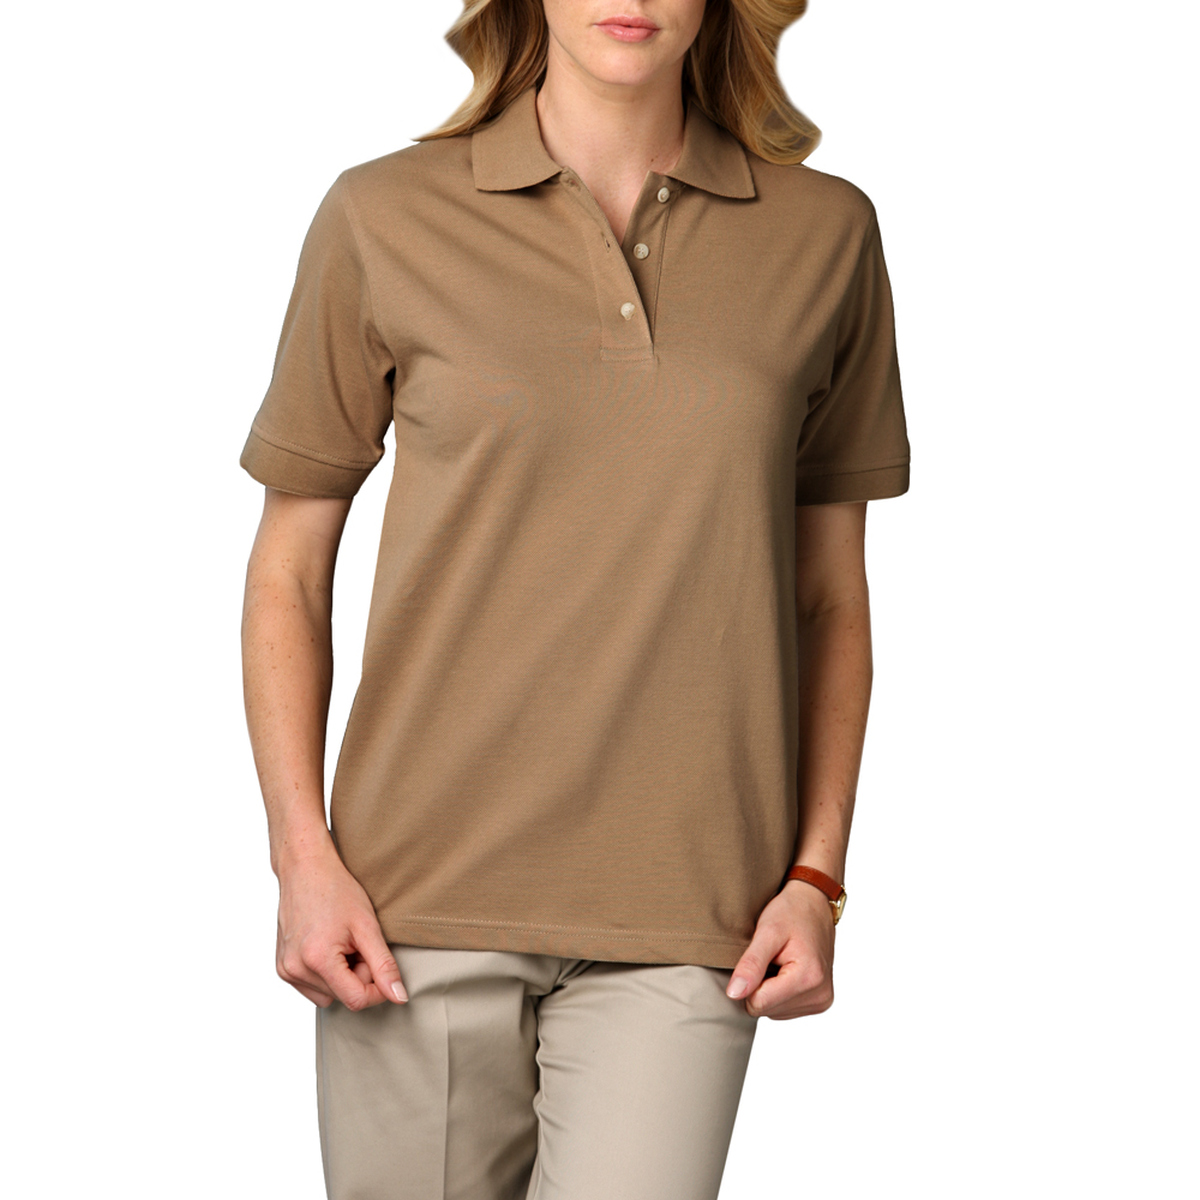 Ladie's Short Sleeve Superblend Pique-CLEMENS